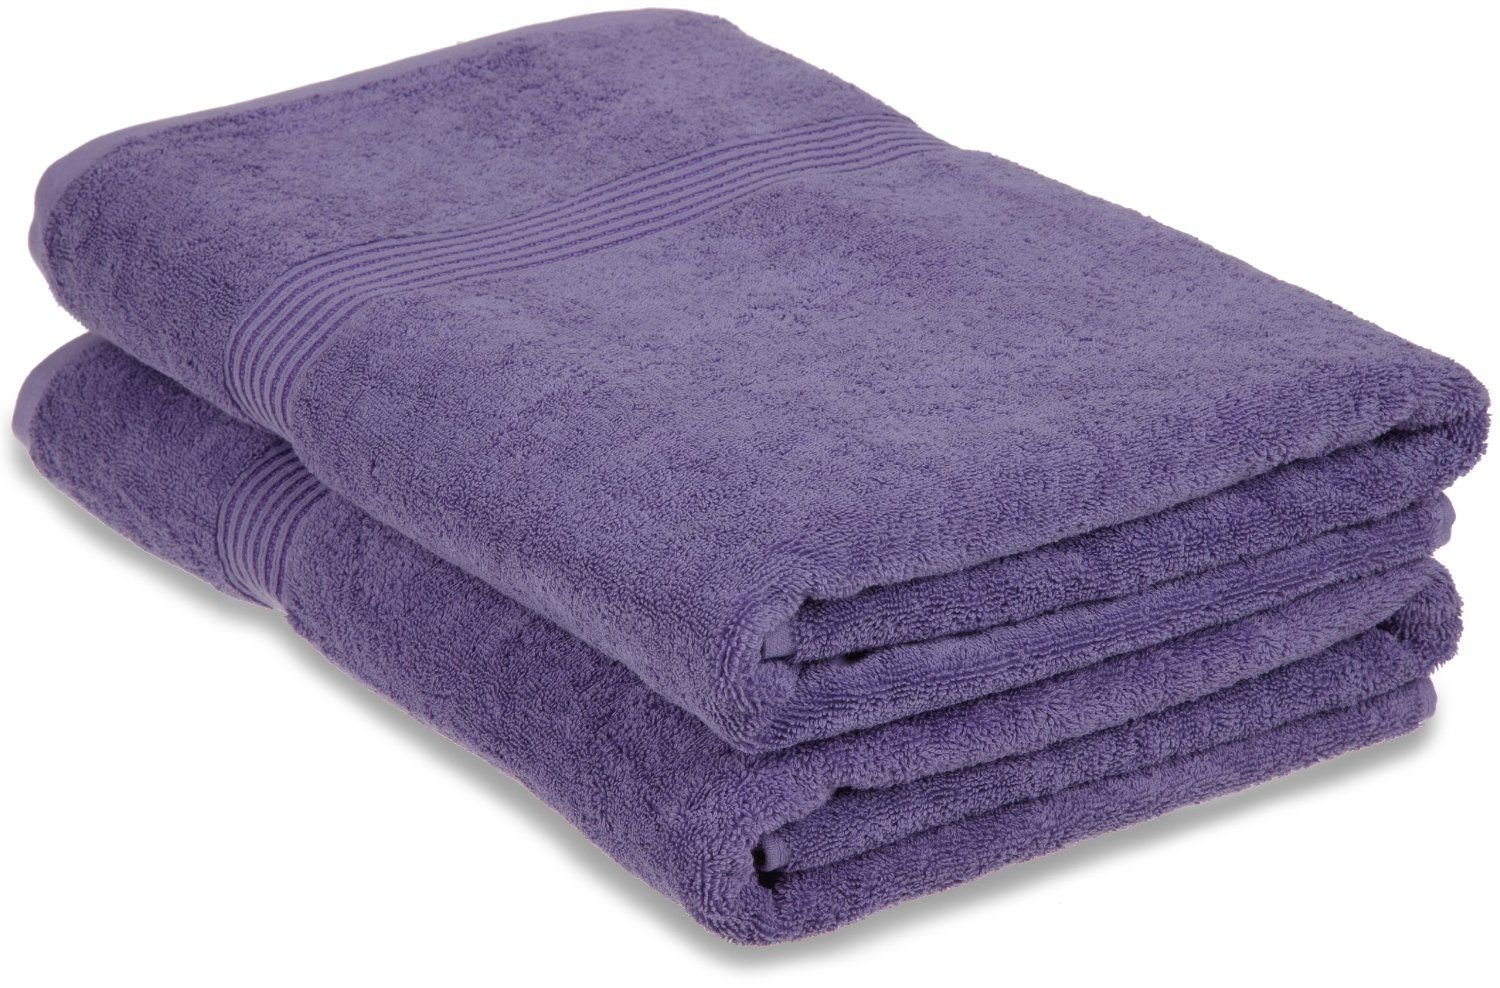 Superior Luxurious Soft Hotel & Spa Quality Oversized Bath Sheet Set of 2, Made of 100% Premium Long-Staple Combed Cotton - Royal Purple, 34'' x 68'' each